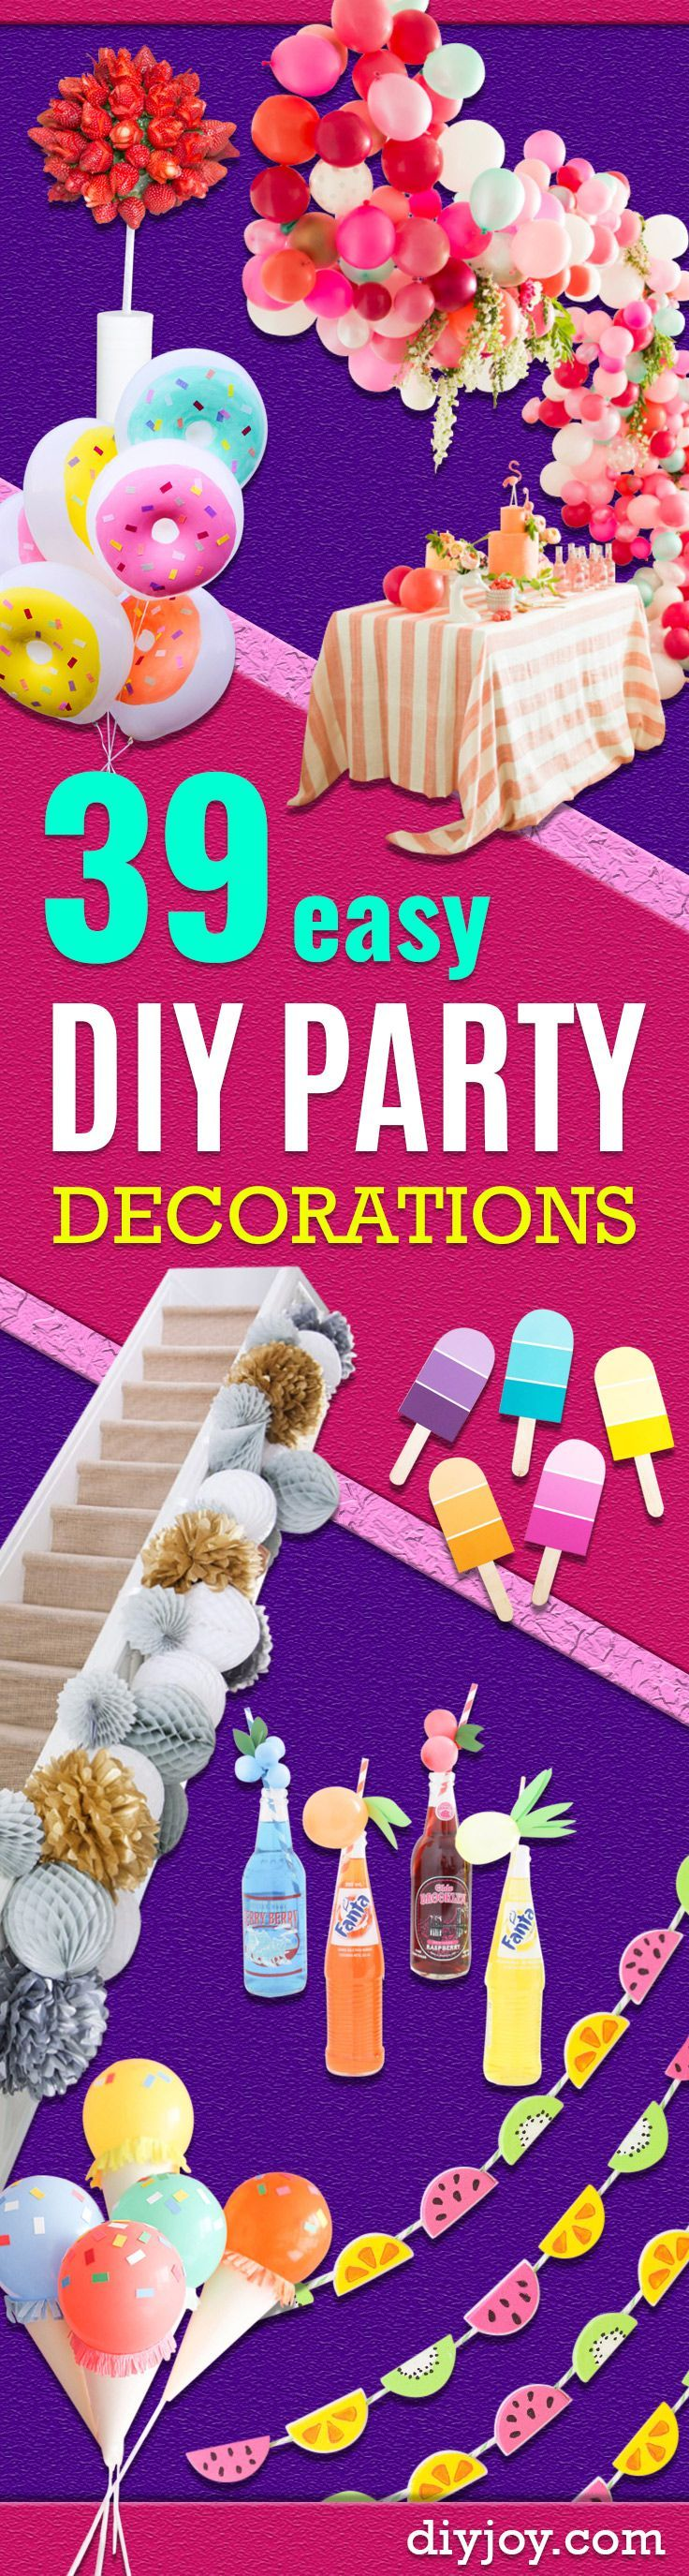 22 best images about birthday party ideas themes on for Disco decorations diy